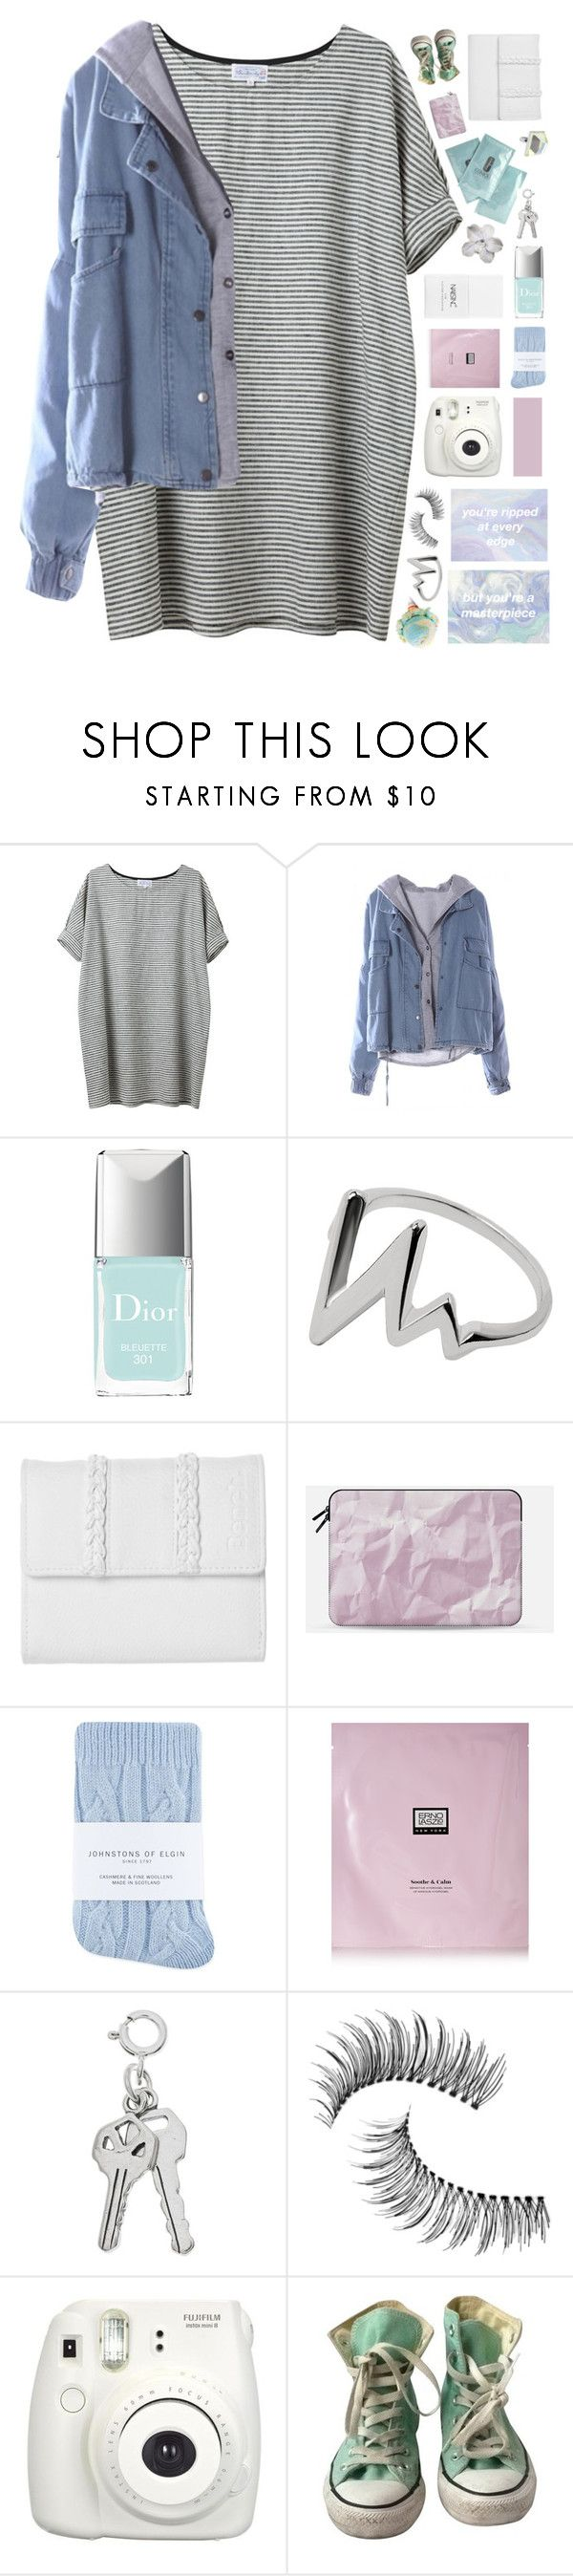 """""""BRAND NEW SOUNDS IN MY MIND"""" by w-anderess ❤ liked on Polyvore featuring Christian Dior, Bench, Nails Inc., Casetify, Johnstons, Erno Laszlo, Trish McEvoy, Fujifilm, Converse and hannahs5kchallenge"""